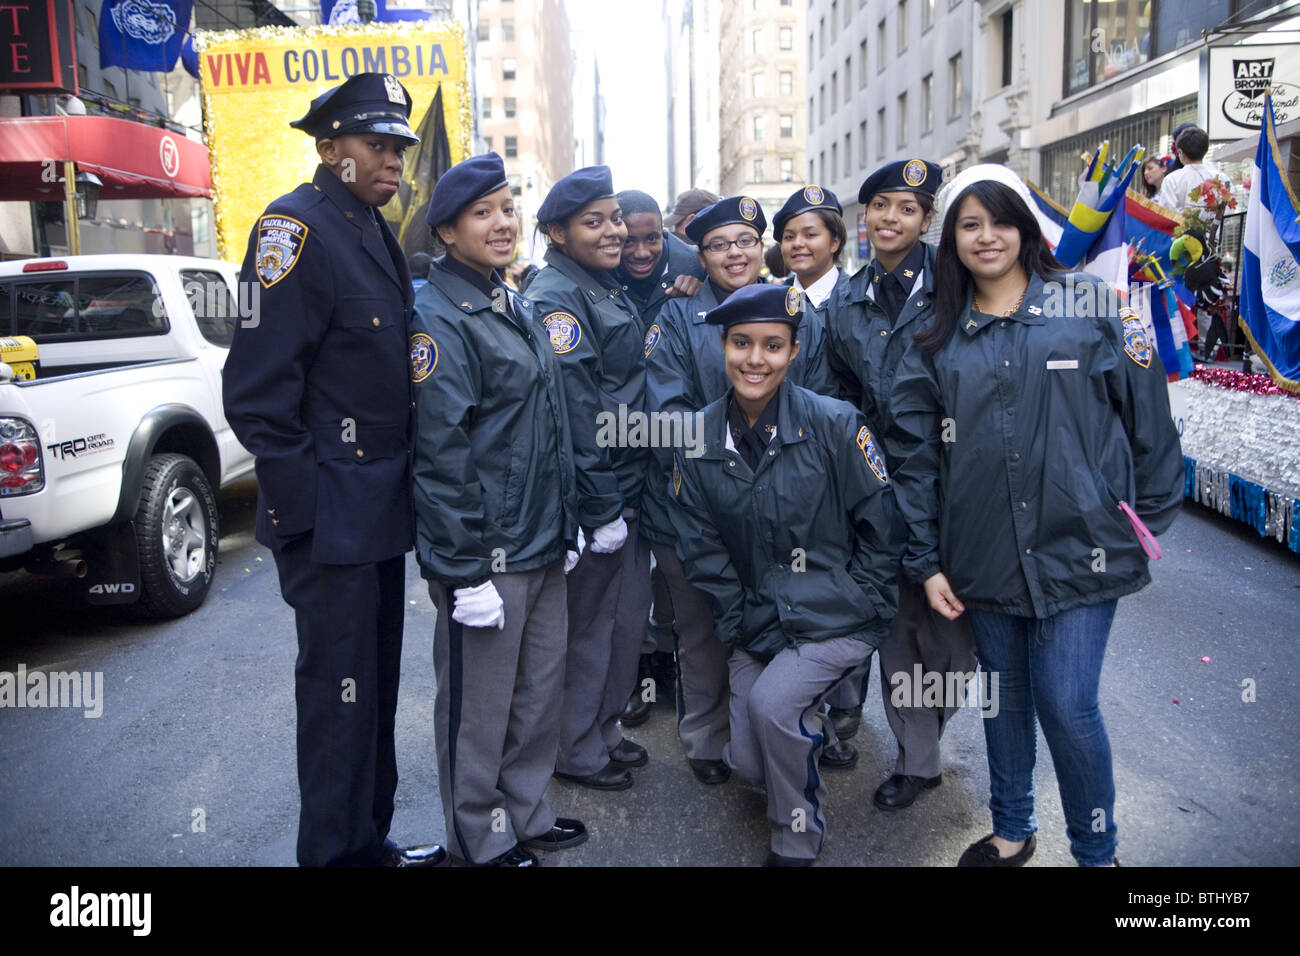 2010: Hispanic Parade, New York City. Police Explorers and auxiliary(Teenage group sponsored by the NYPD) - Stock Image